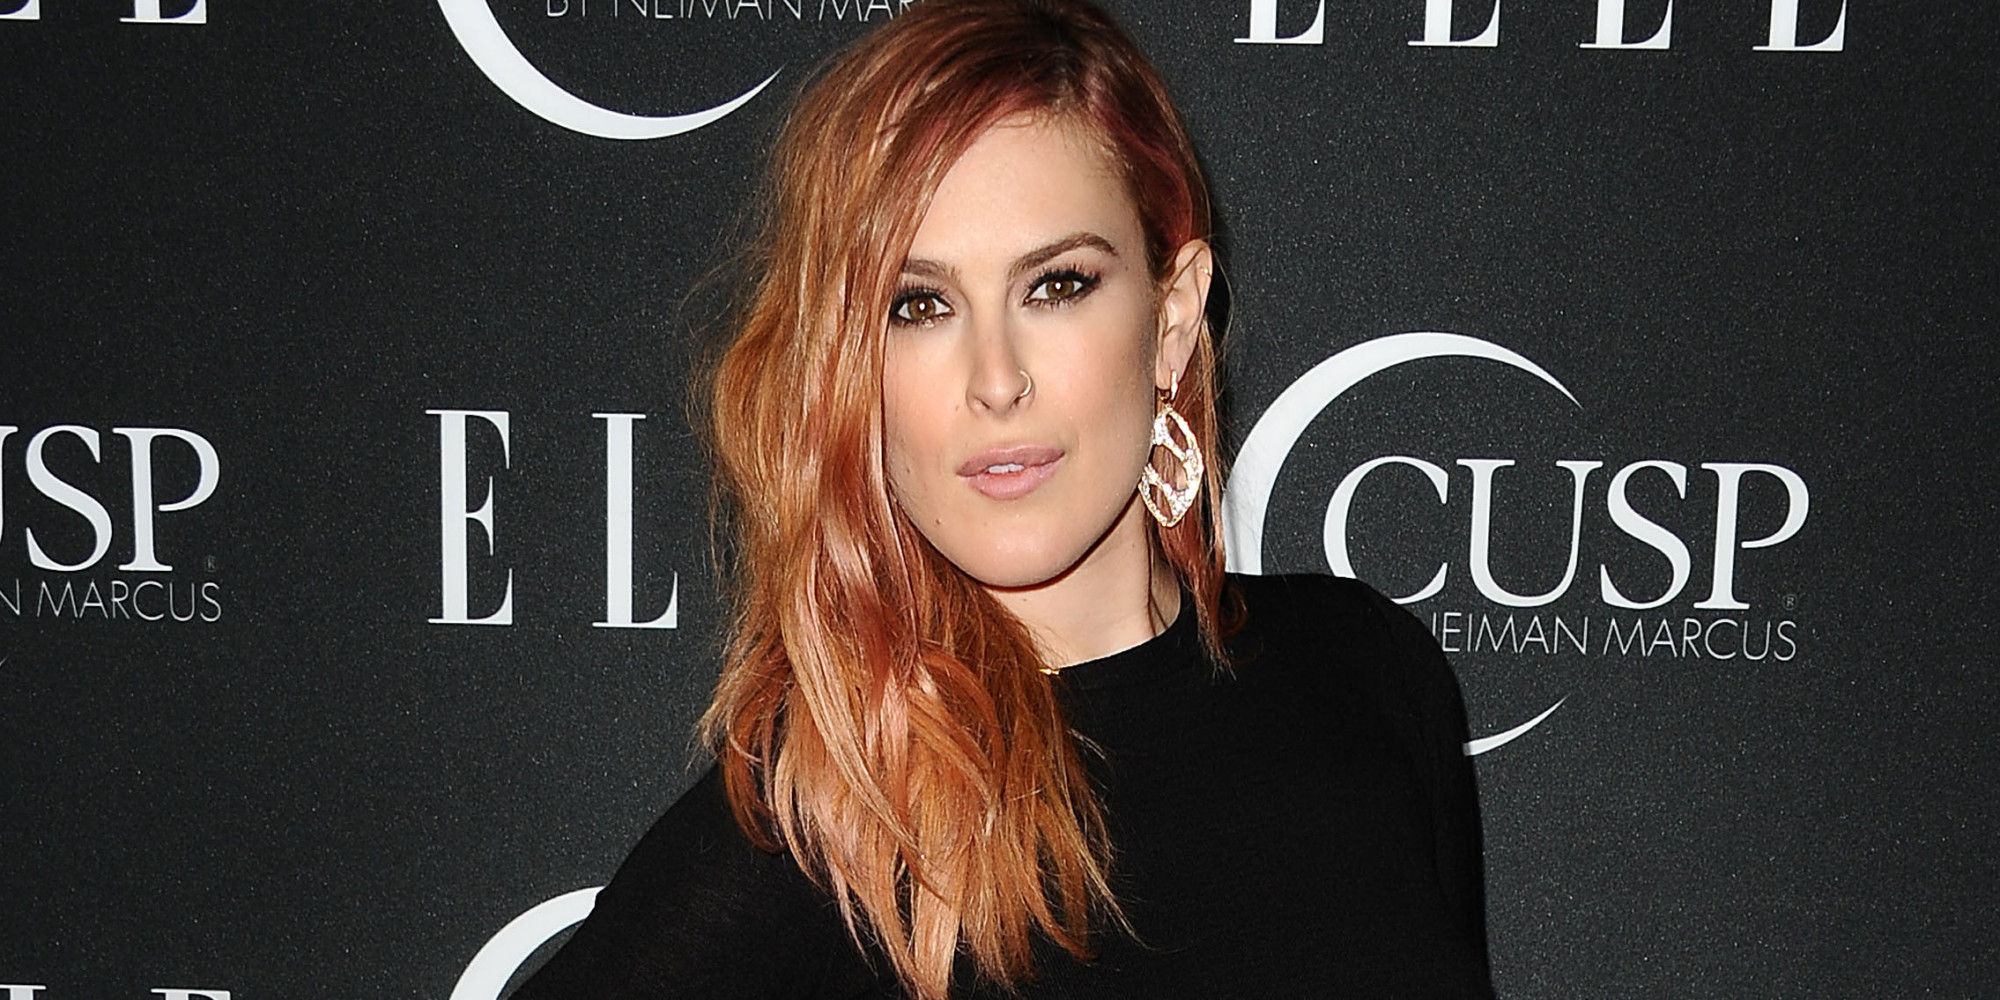 The 29-year old daughter of father Bruce Willis and mother Demi Moore, 168 cm tall Rumer Willis in 2018 photo